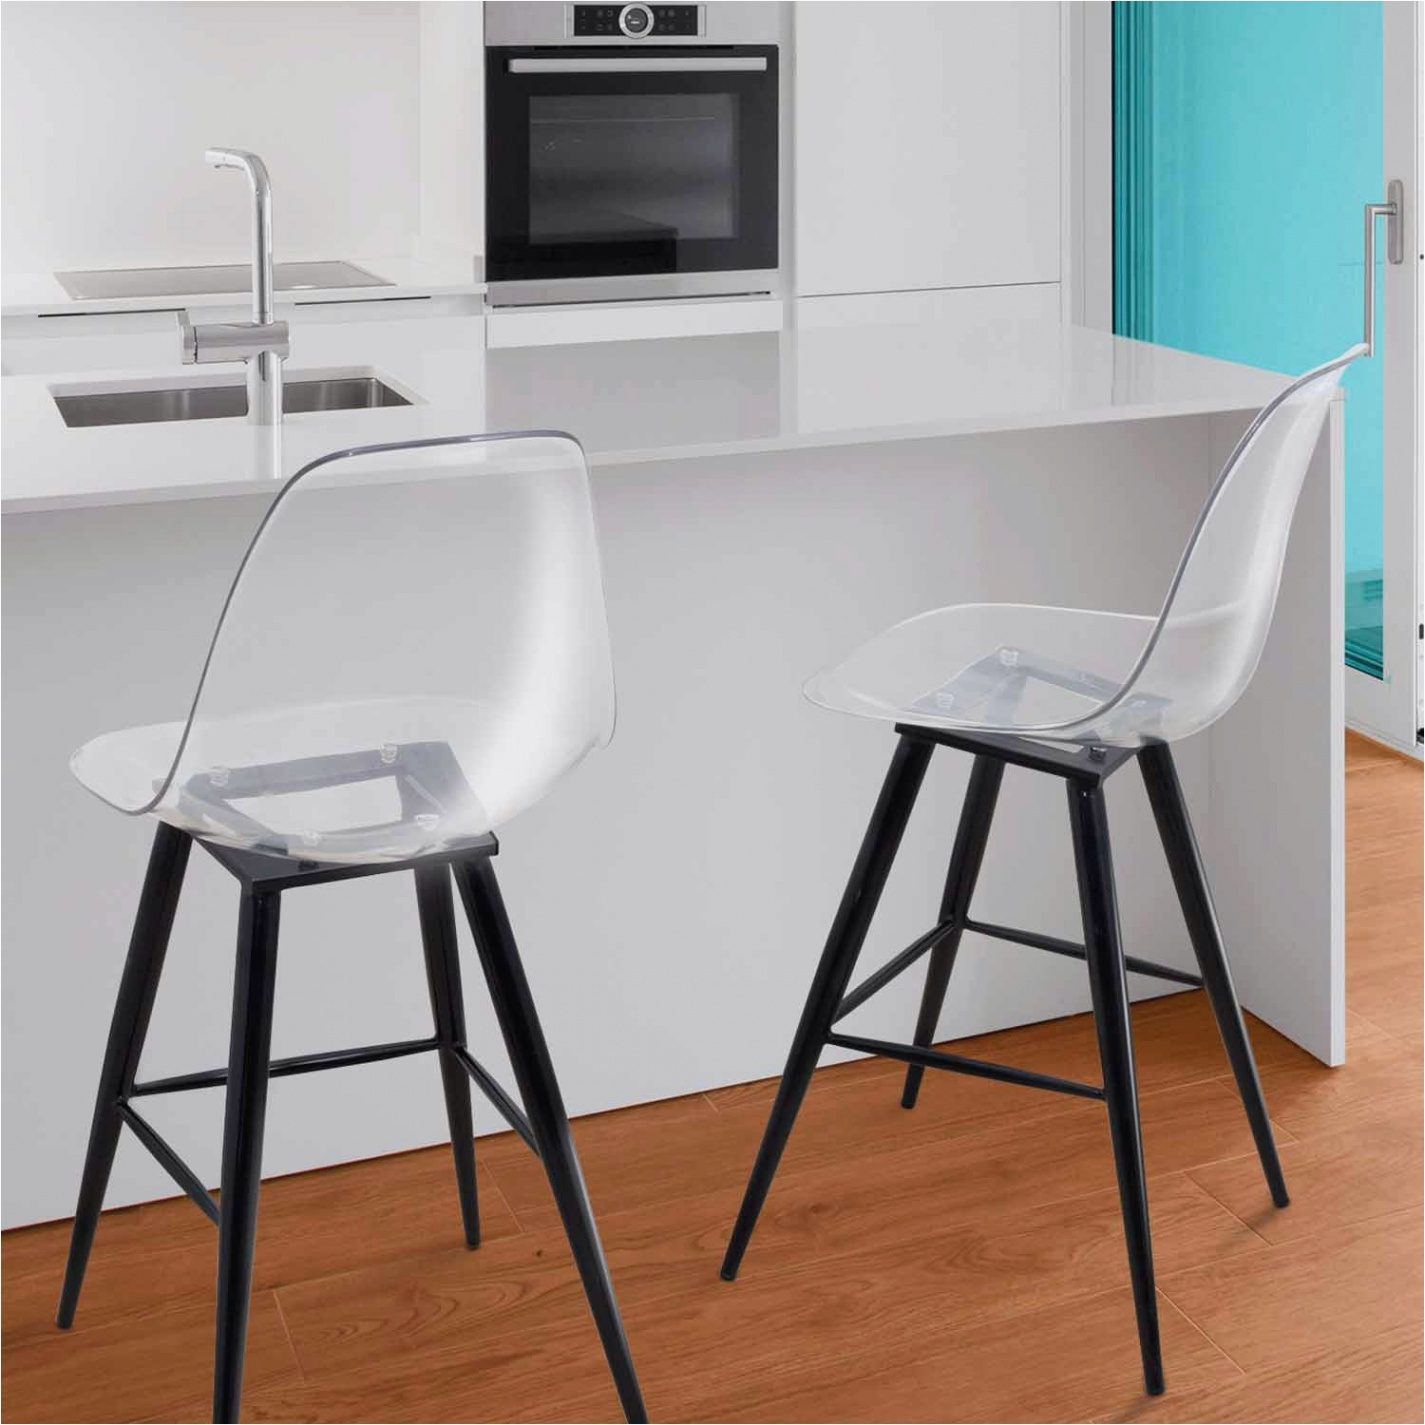 Table Bar Industriel Table Bar Industriel Frais Table Haute Industrielle Tourdissant